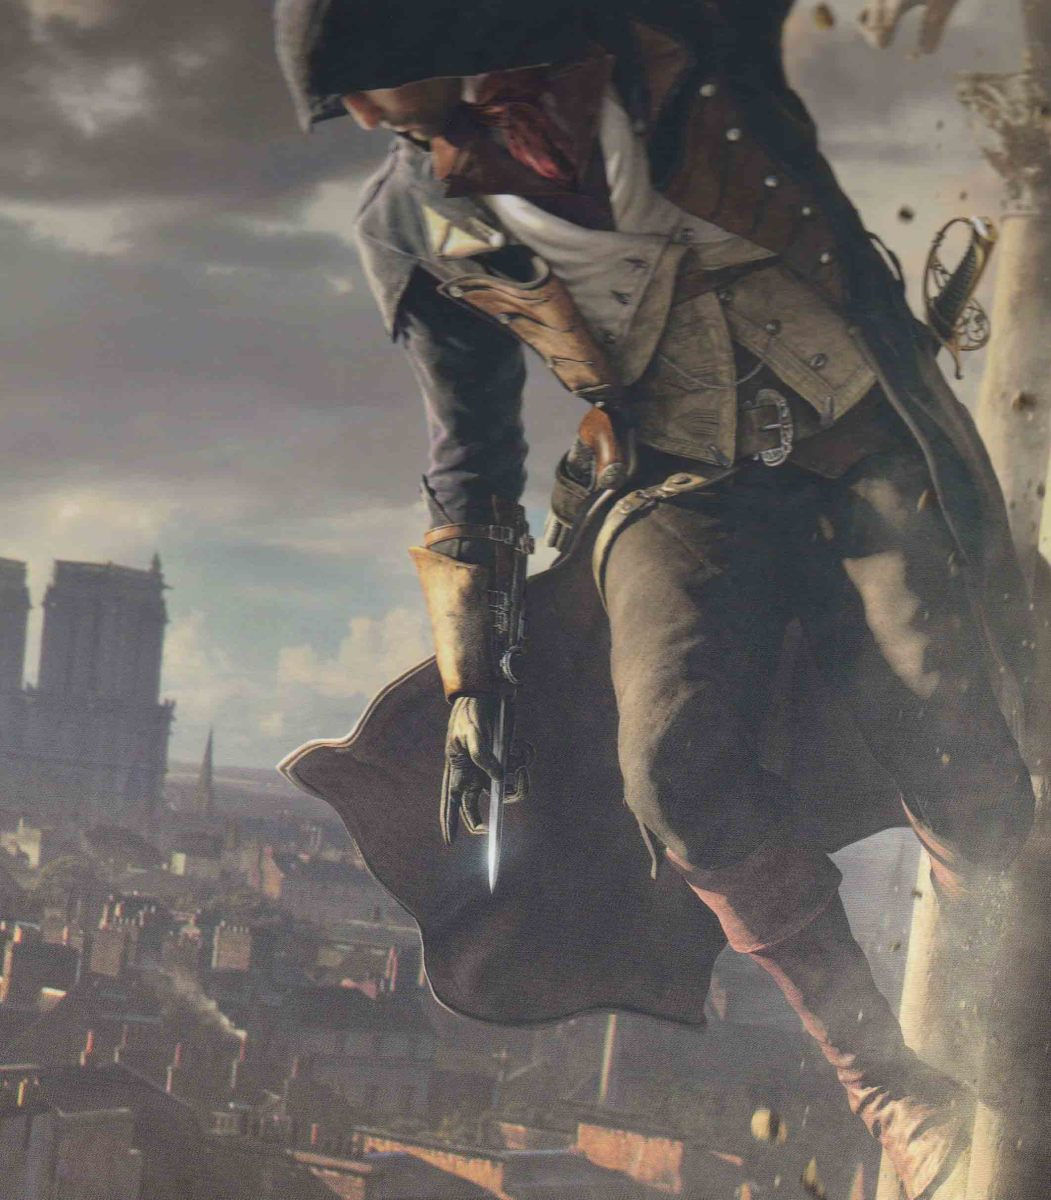 To fly like a gargoyle in the city of Paris is one a skill that Arno cannot unlock... yet.